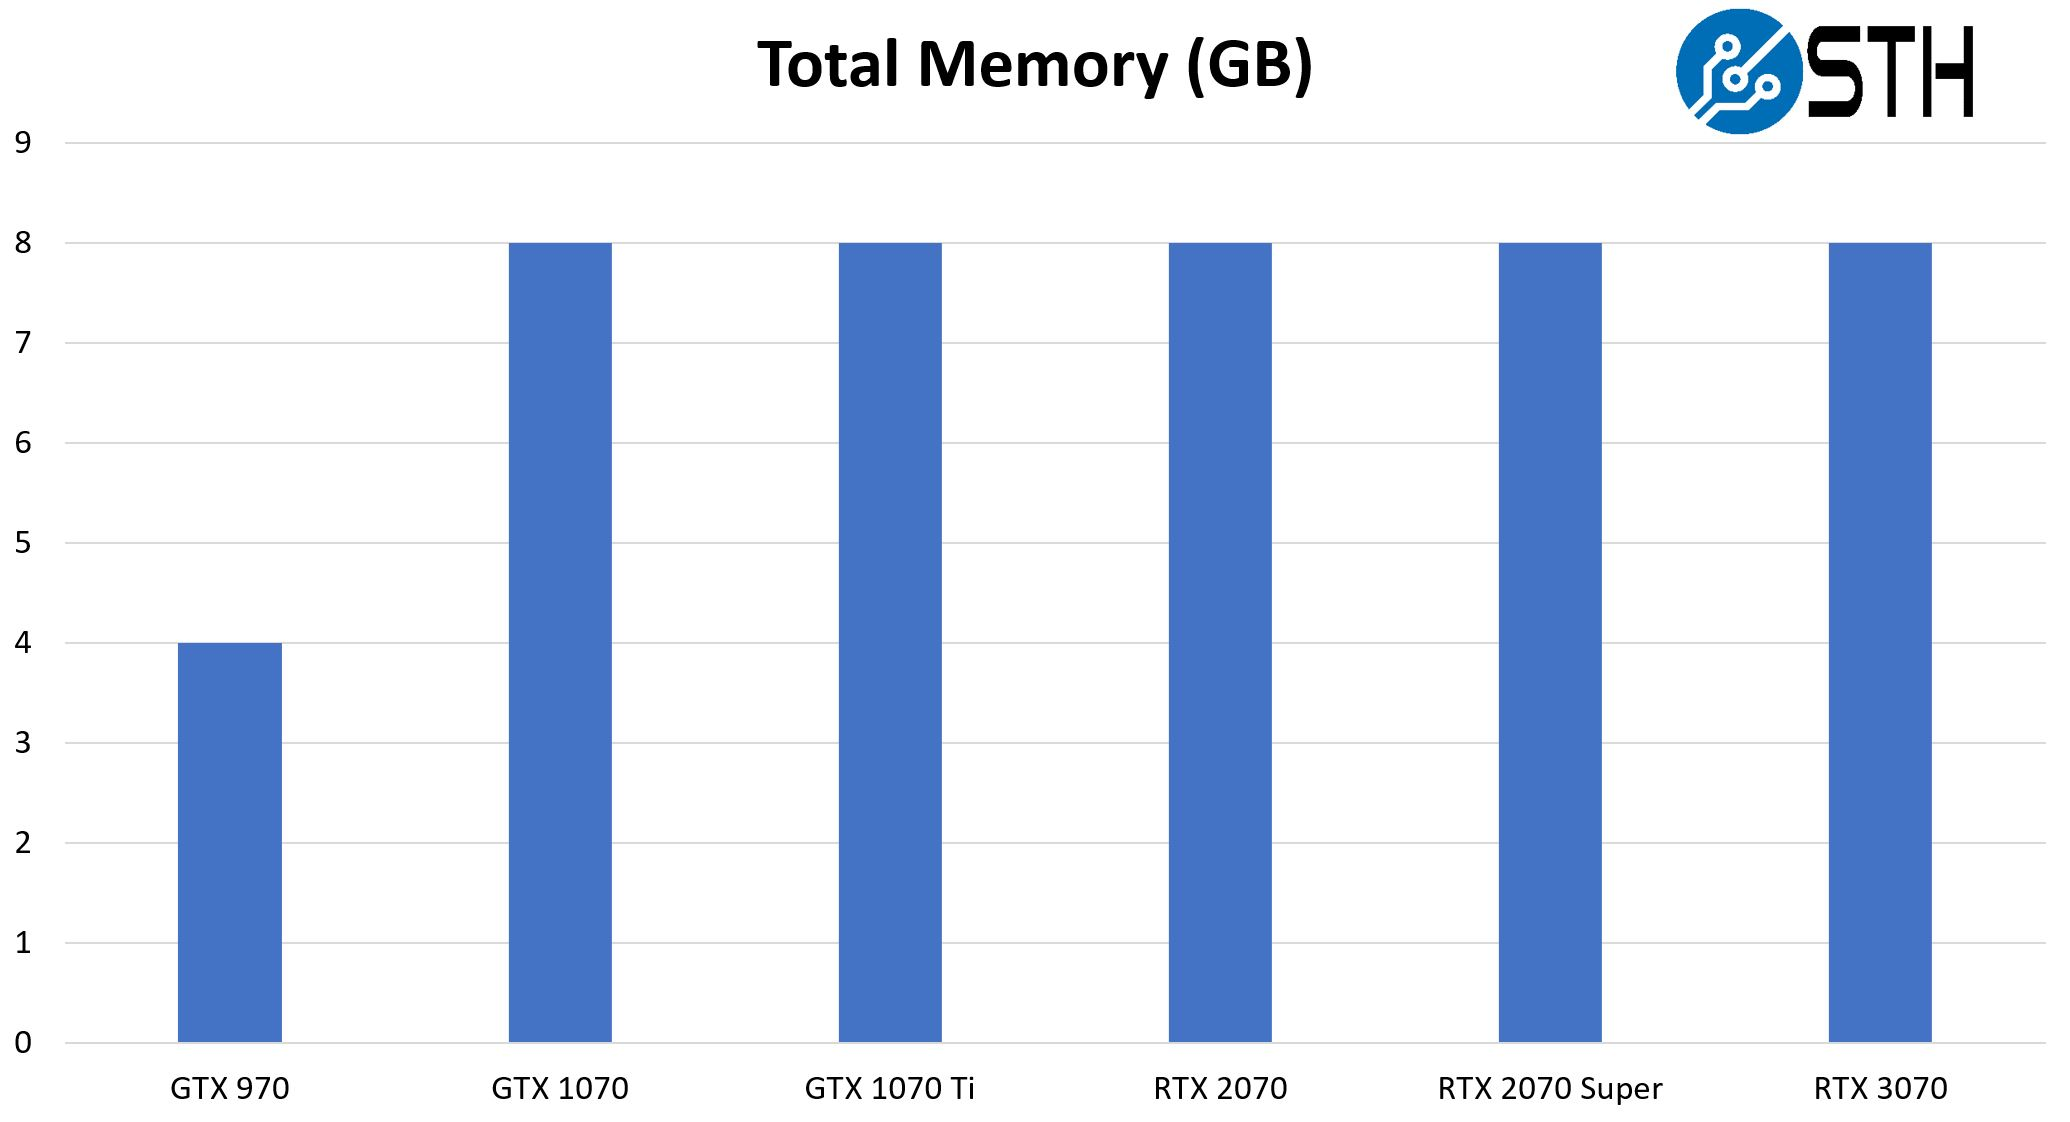 NVIDIA RTX 3070 Total Memory By Generation